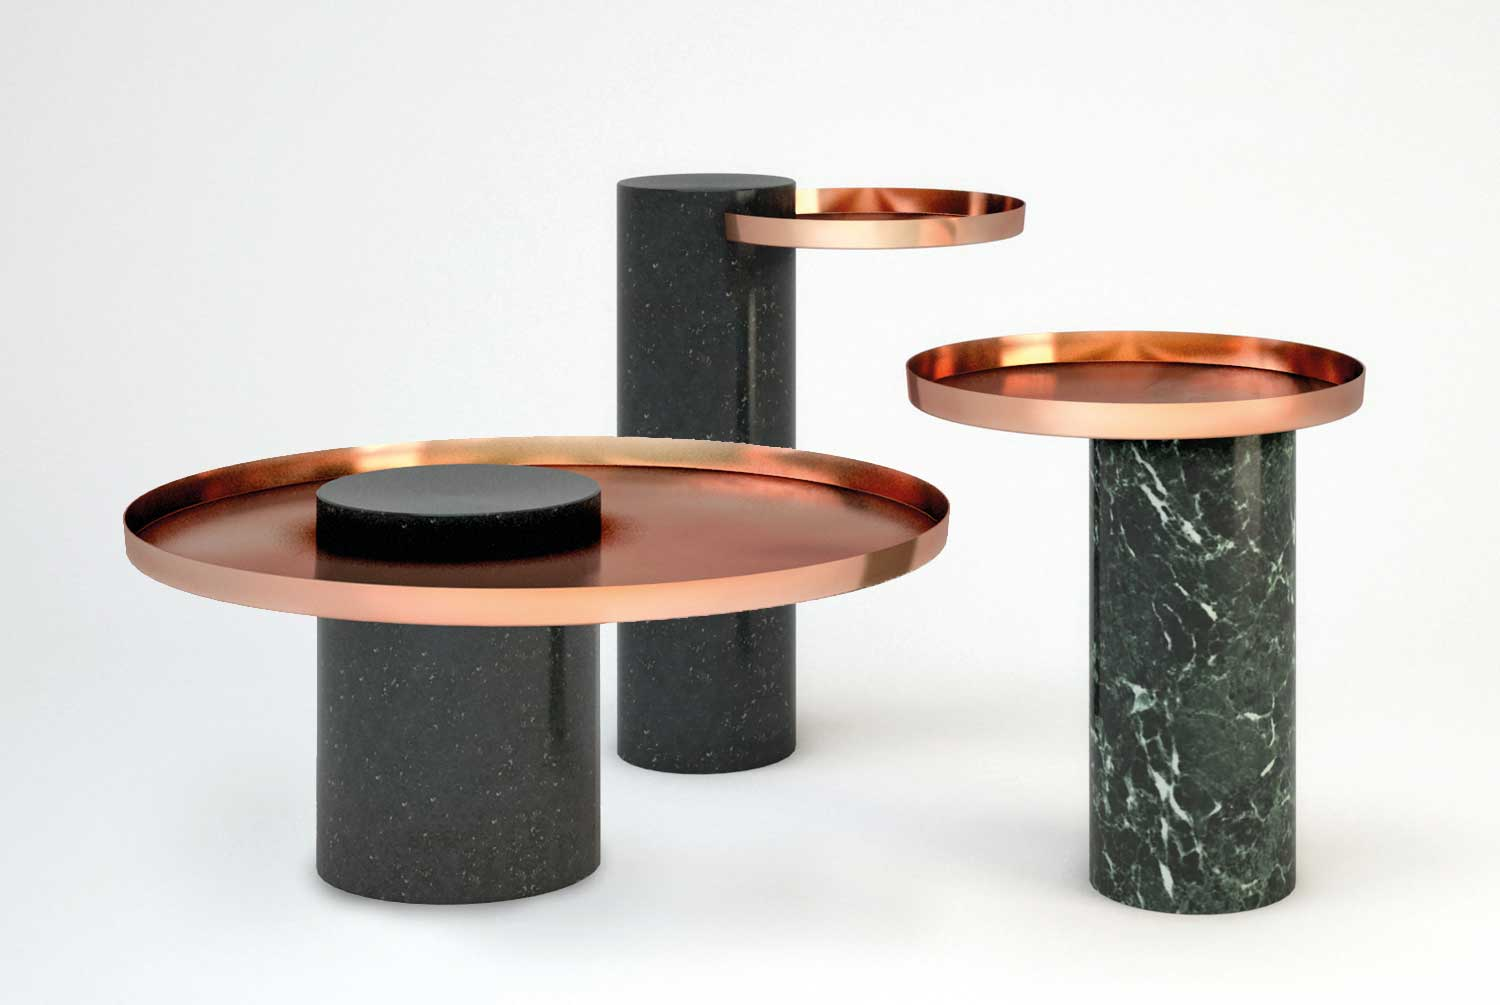 Sebastian Herkner Salute copper & marble side table for La Chance | Yellowtrace